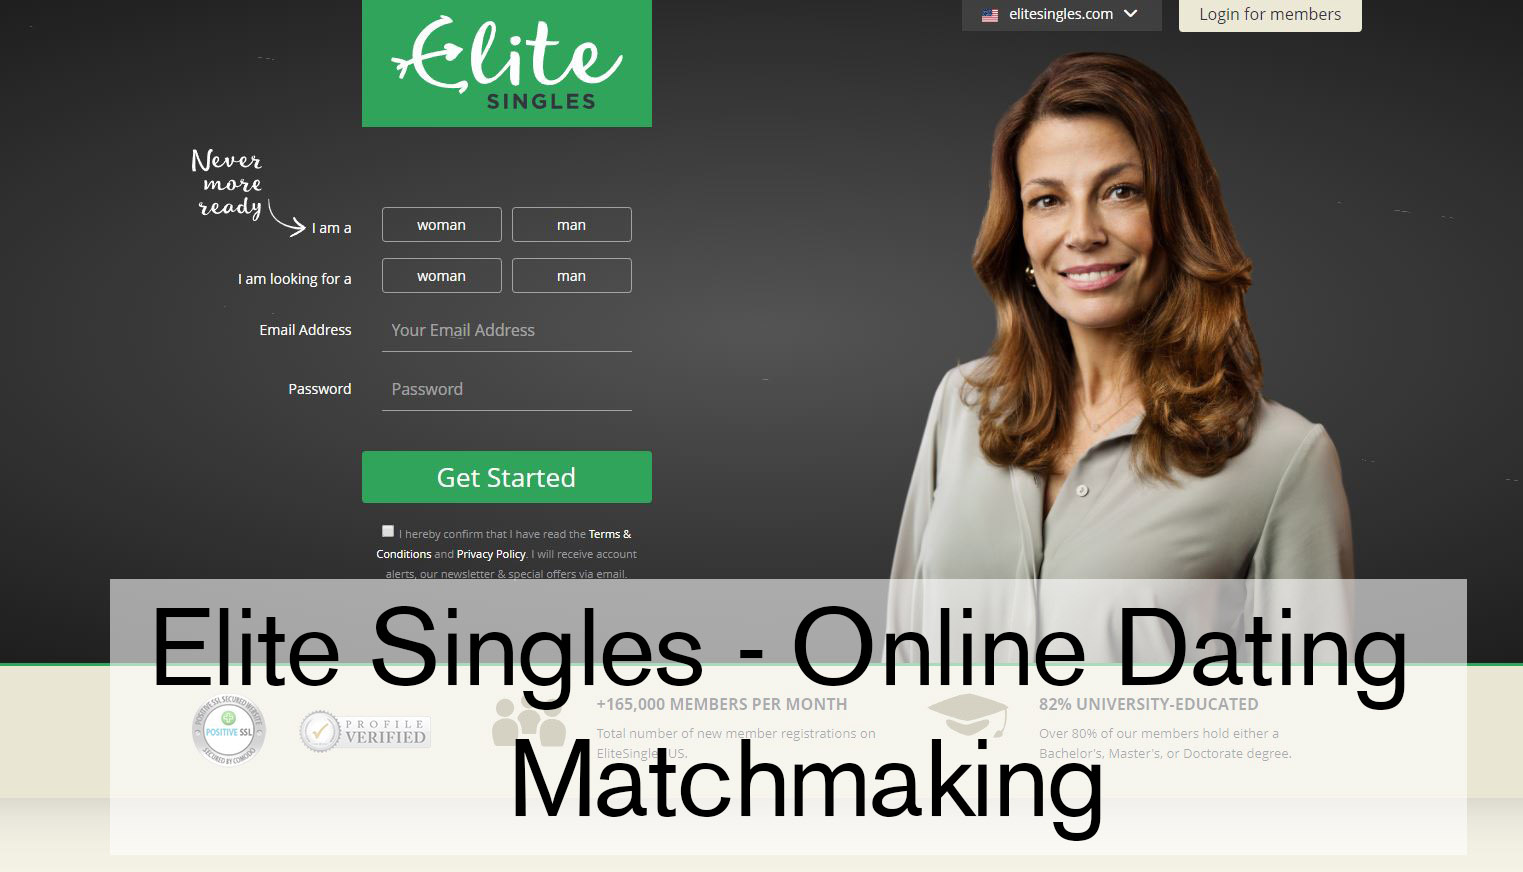 How is elite singles different than other dating sites